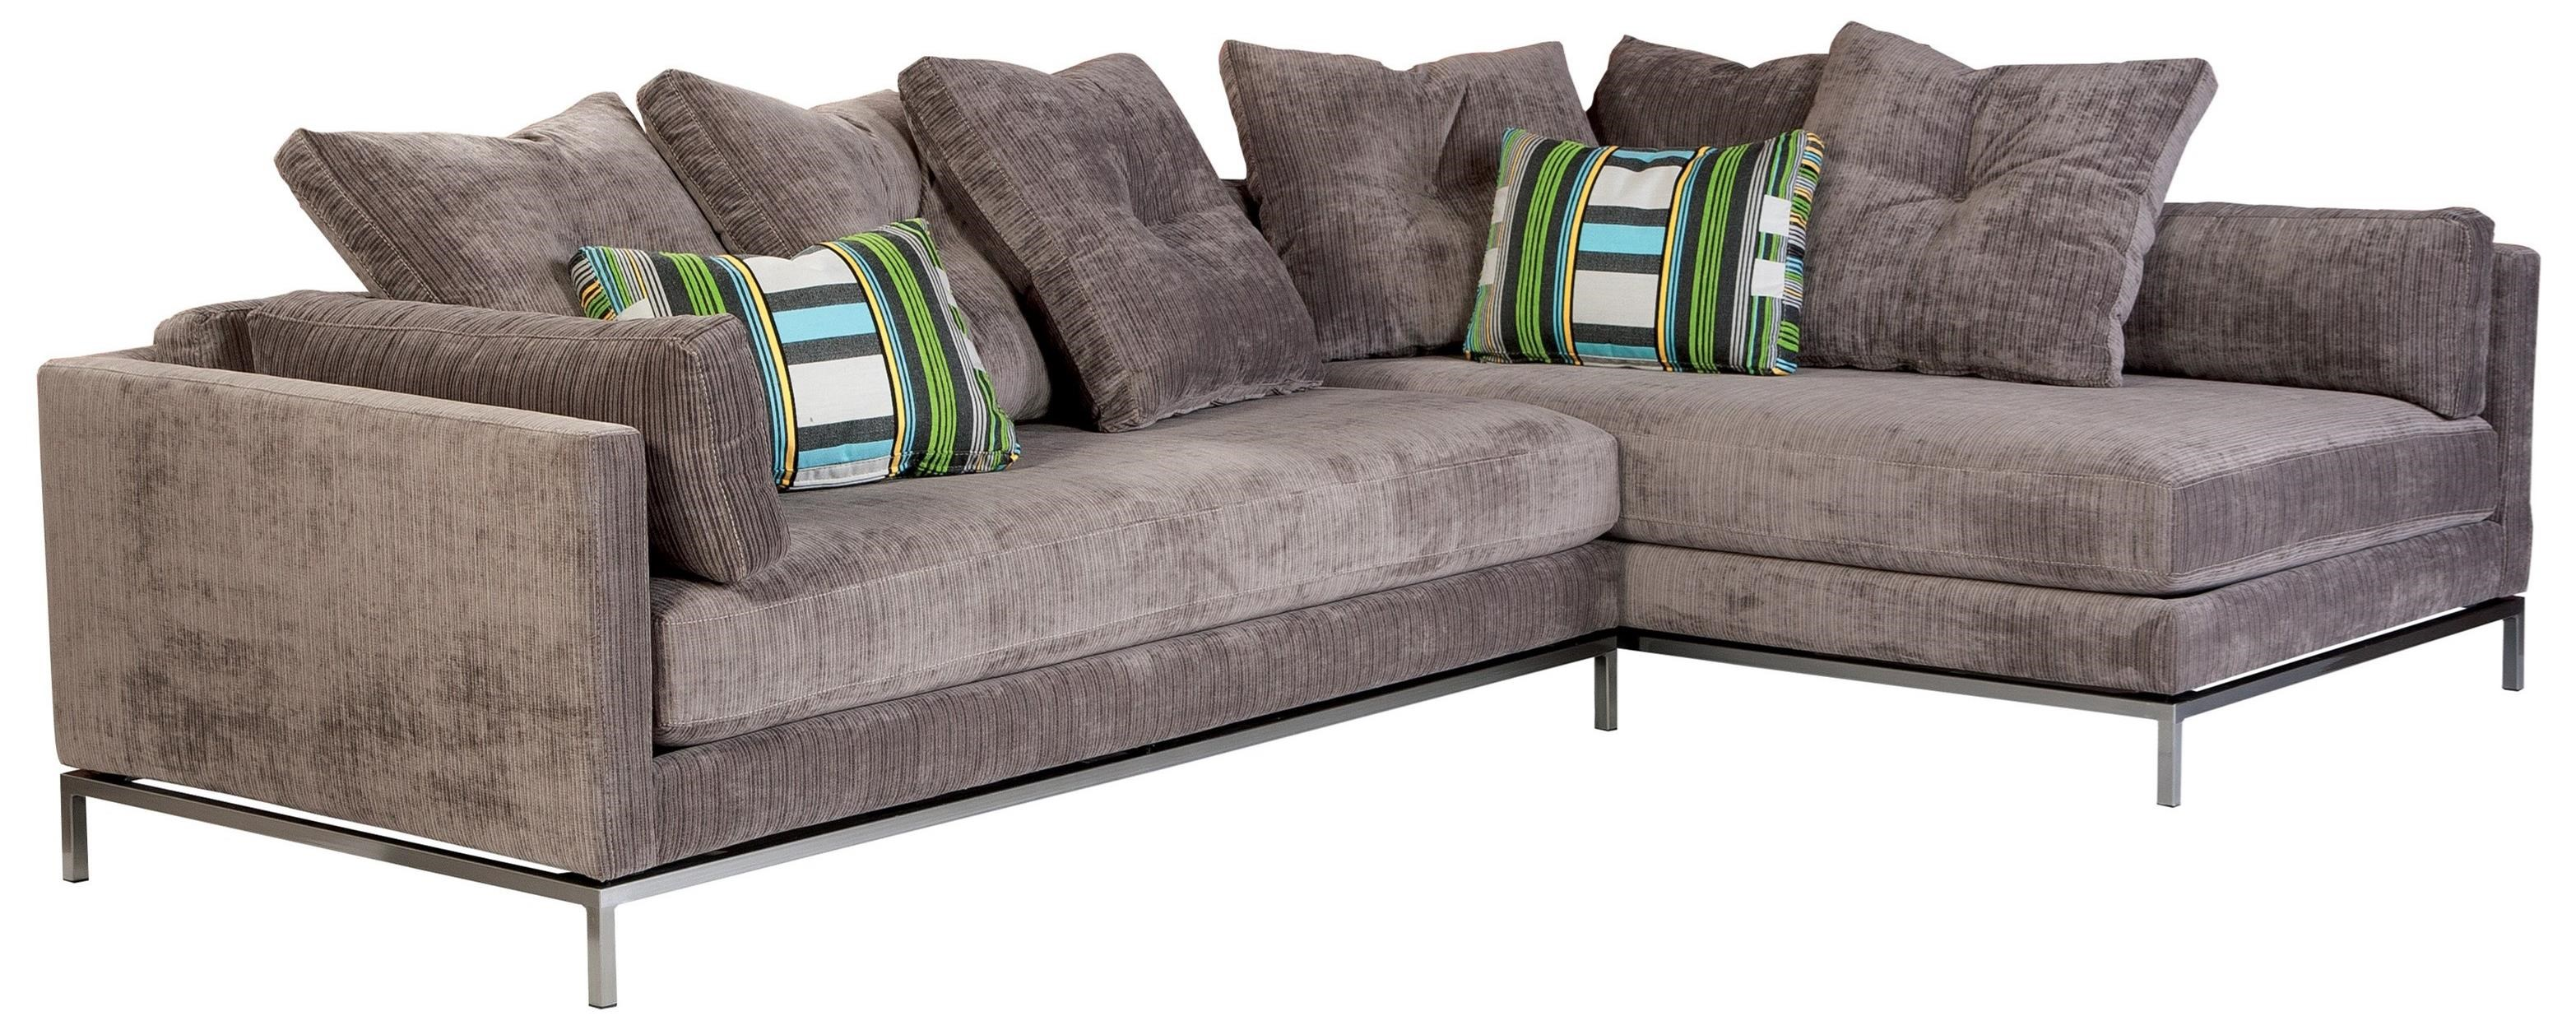 Jonathan Louis Cordoba Sectional Sofa   Item Number: 2x155 35L Brussels Sky  Grey